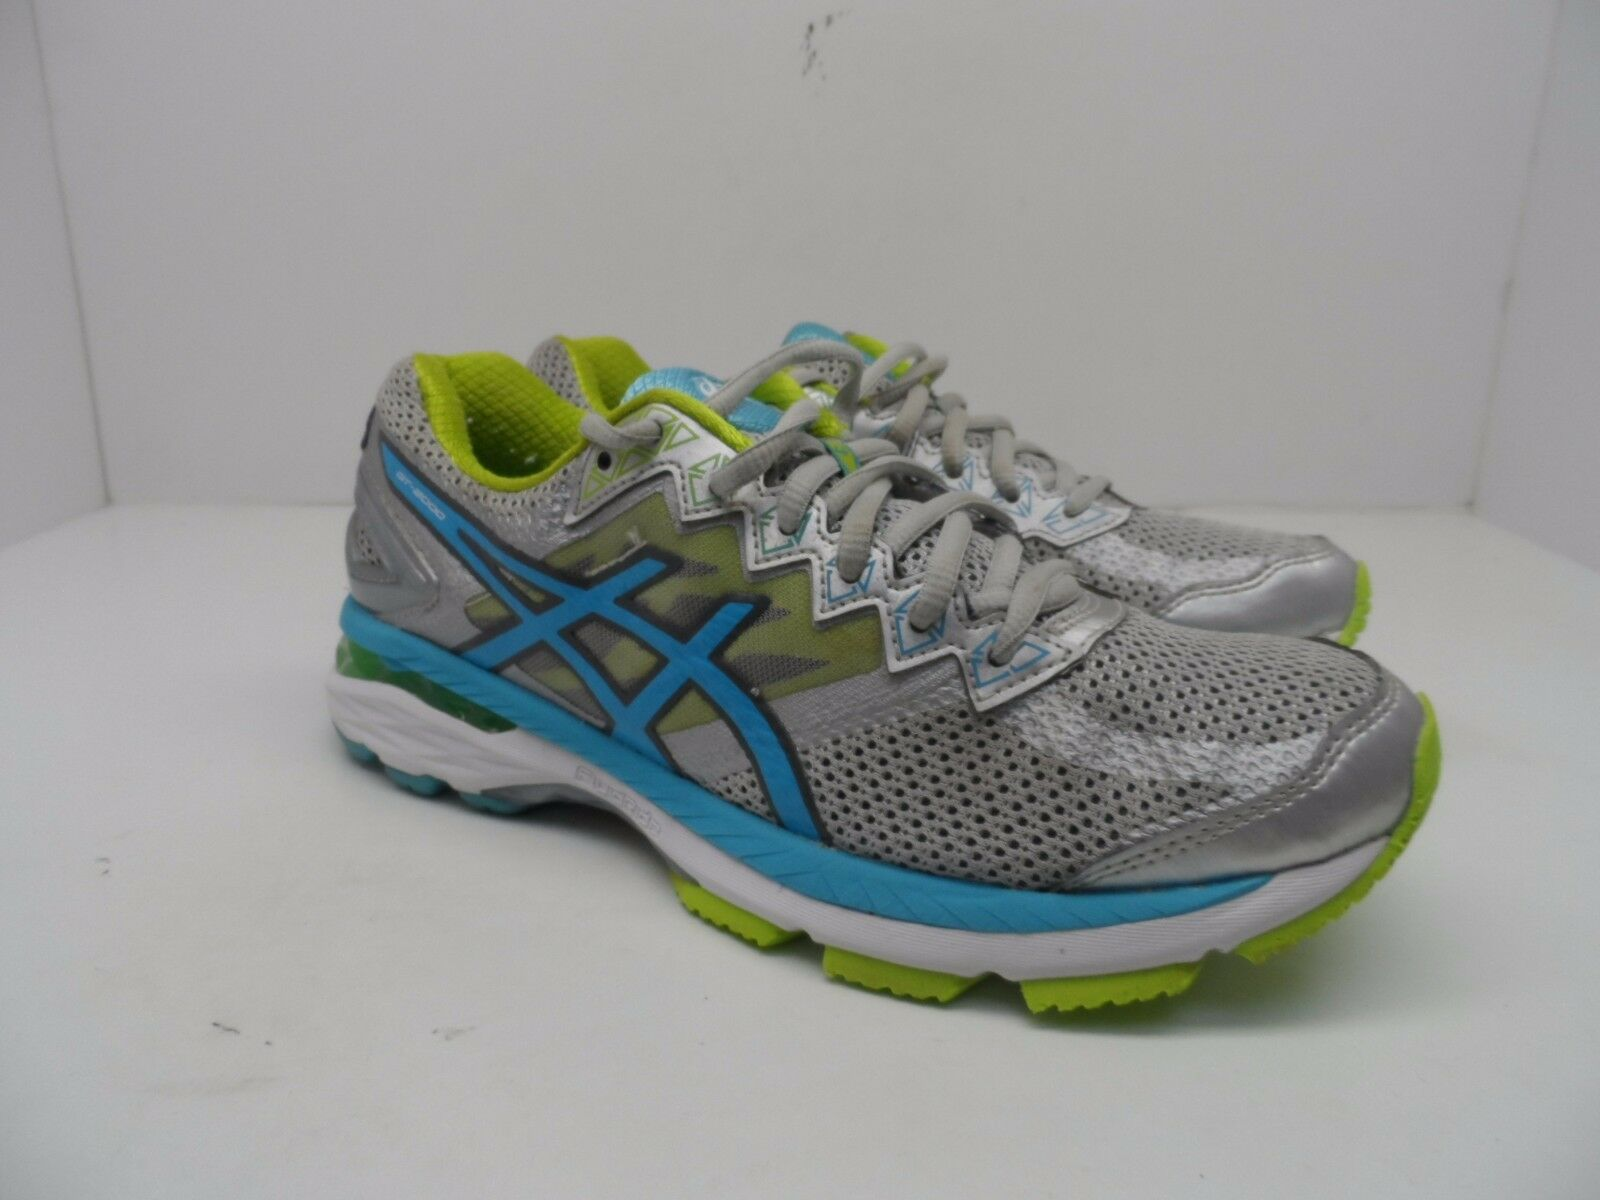 Asics Donna GT 2000 4 argento In esecuzione 8M scarpe argento 4 Turquoise Lime Punch   104383